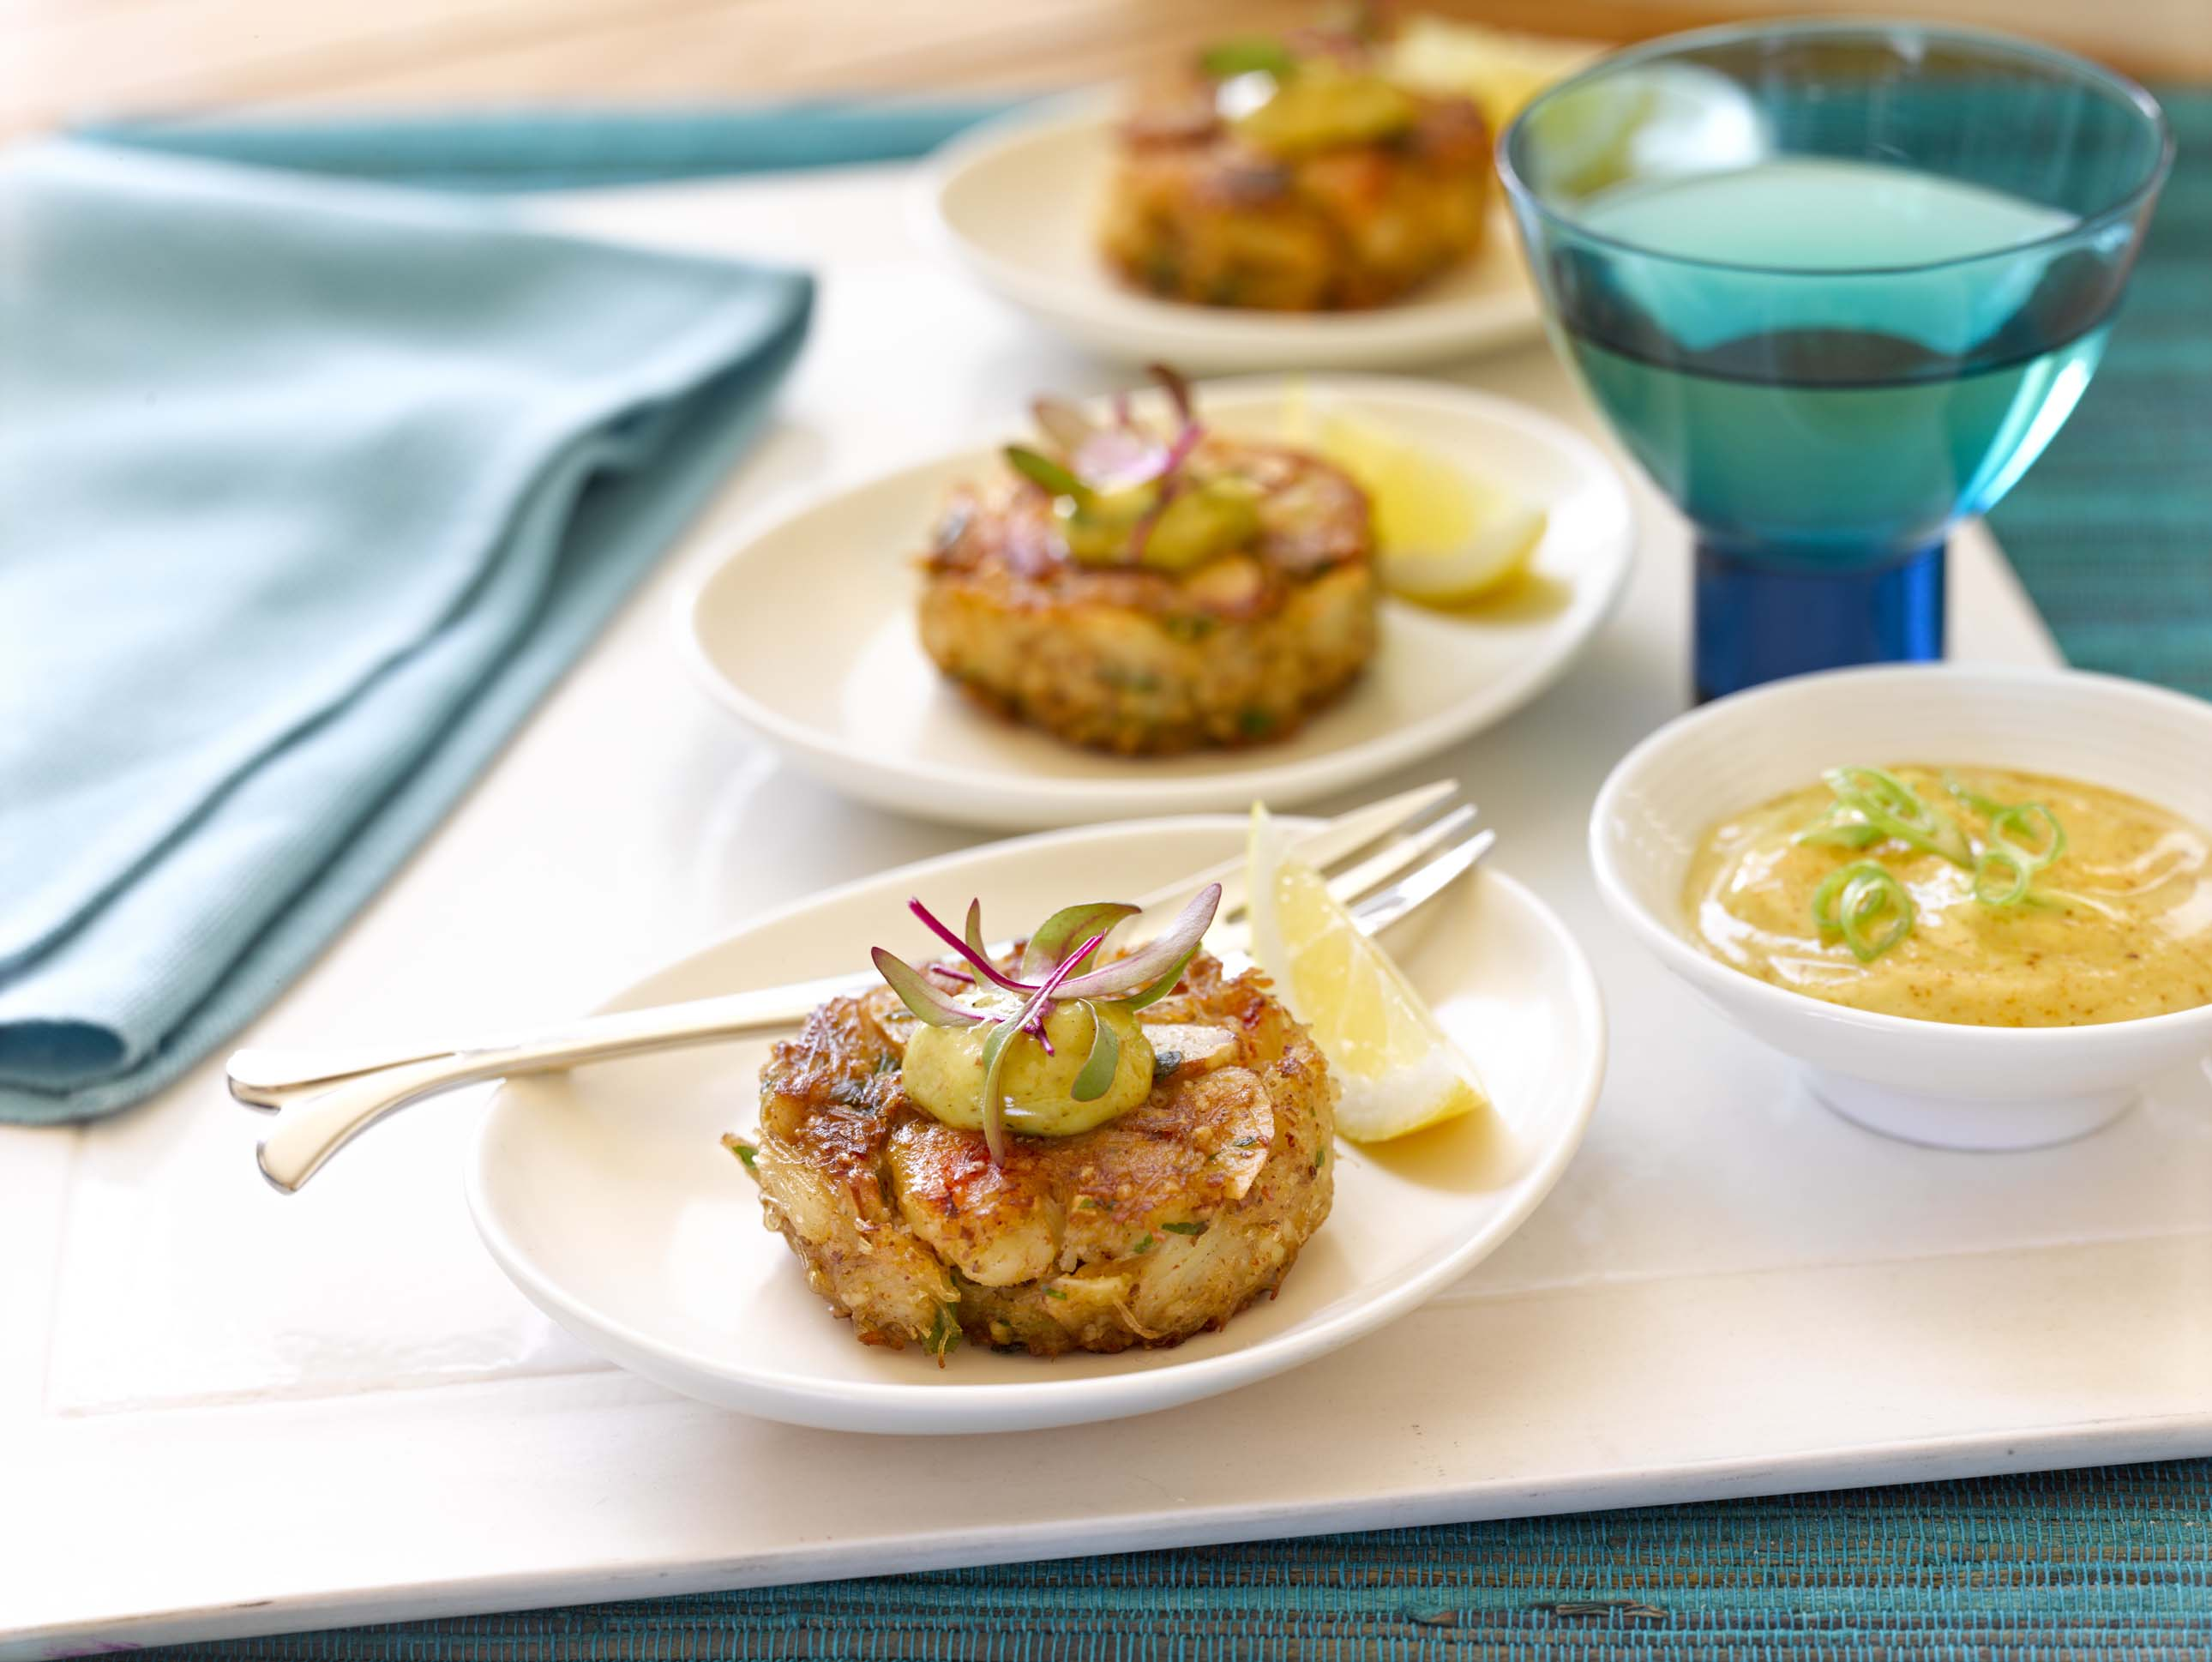 Gluten Free Chesapeake Crab Cakes with Almond Aioli